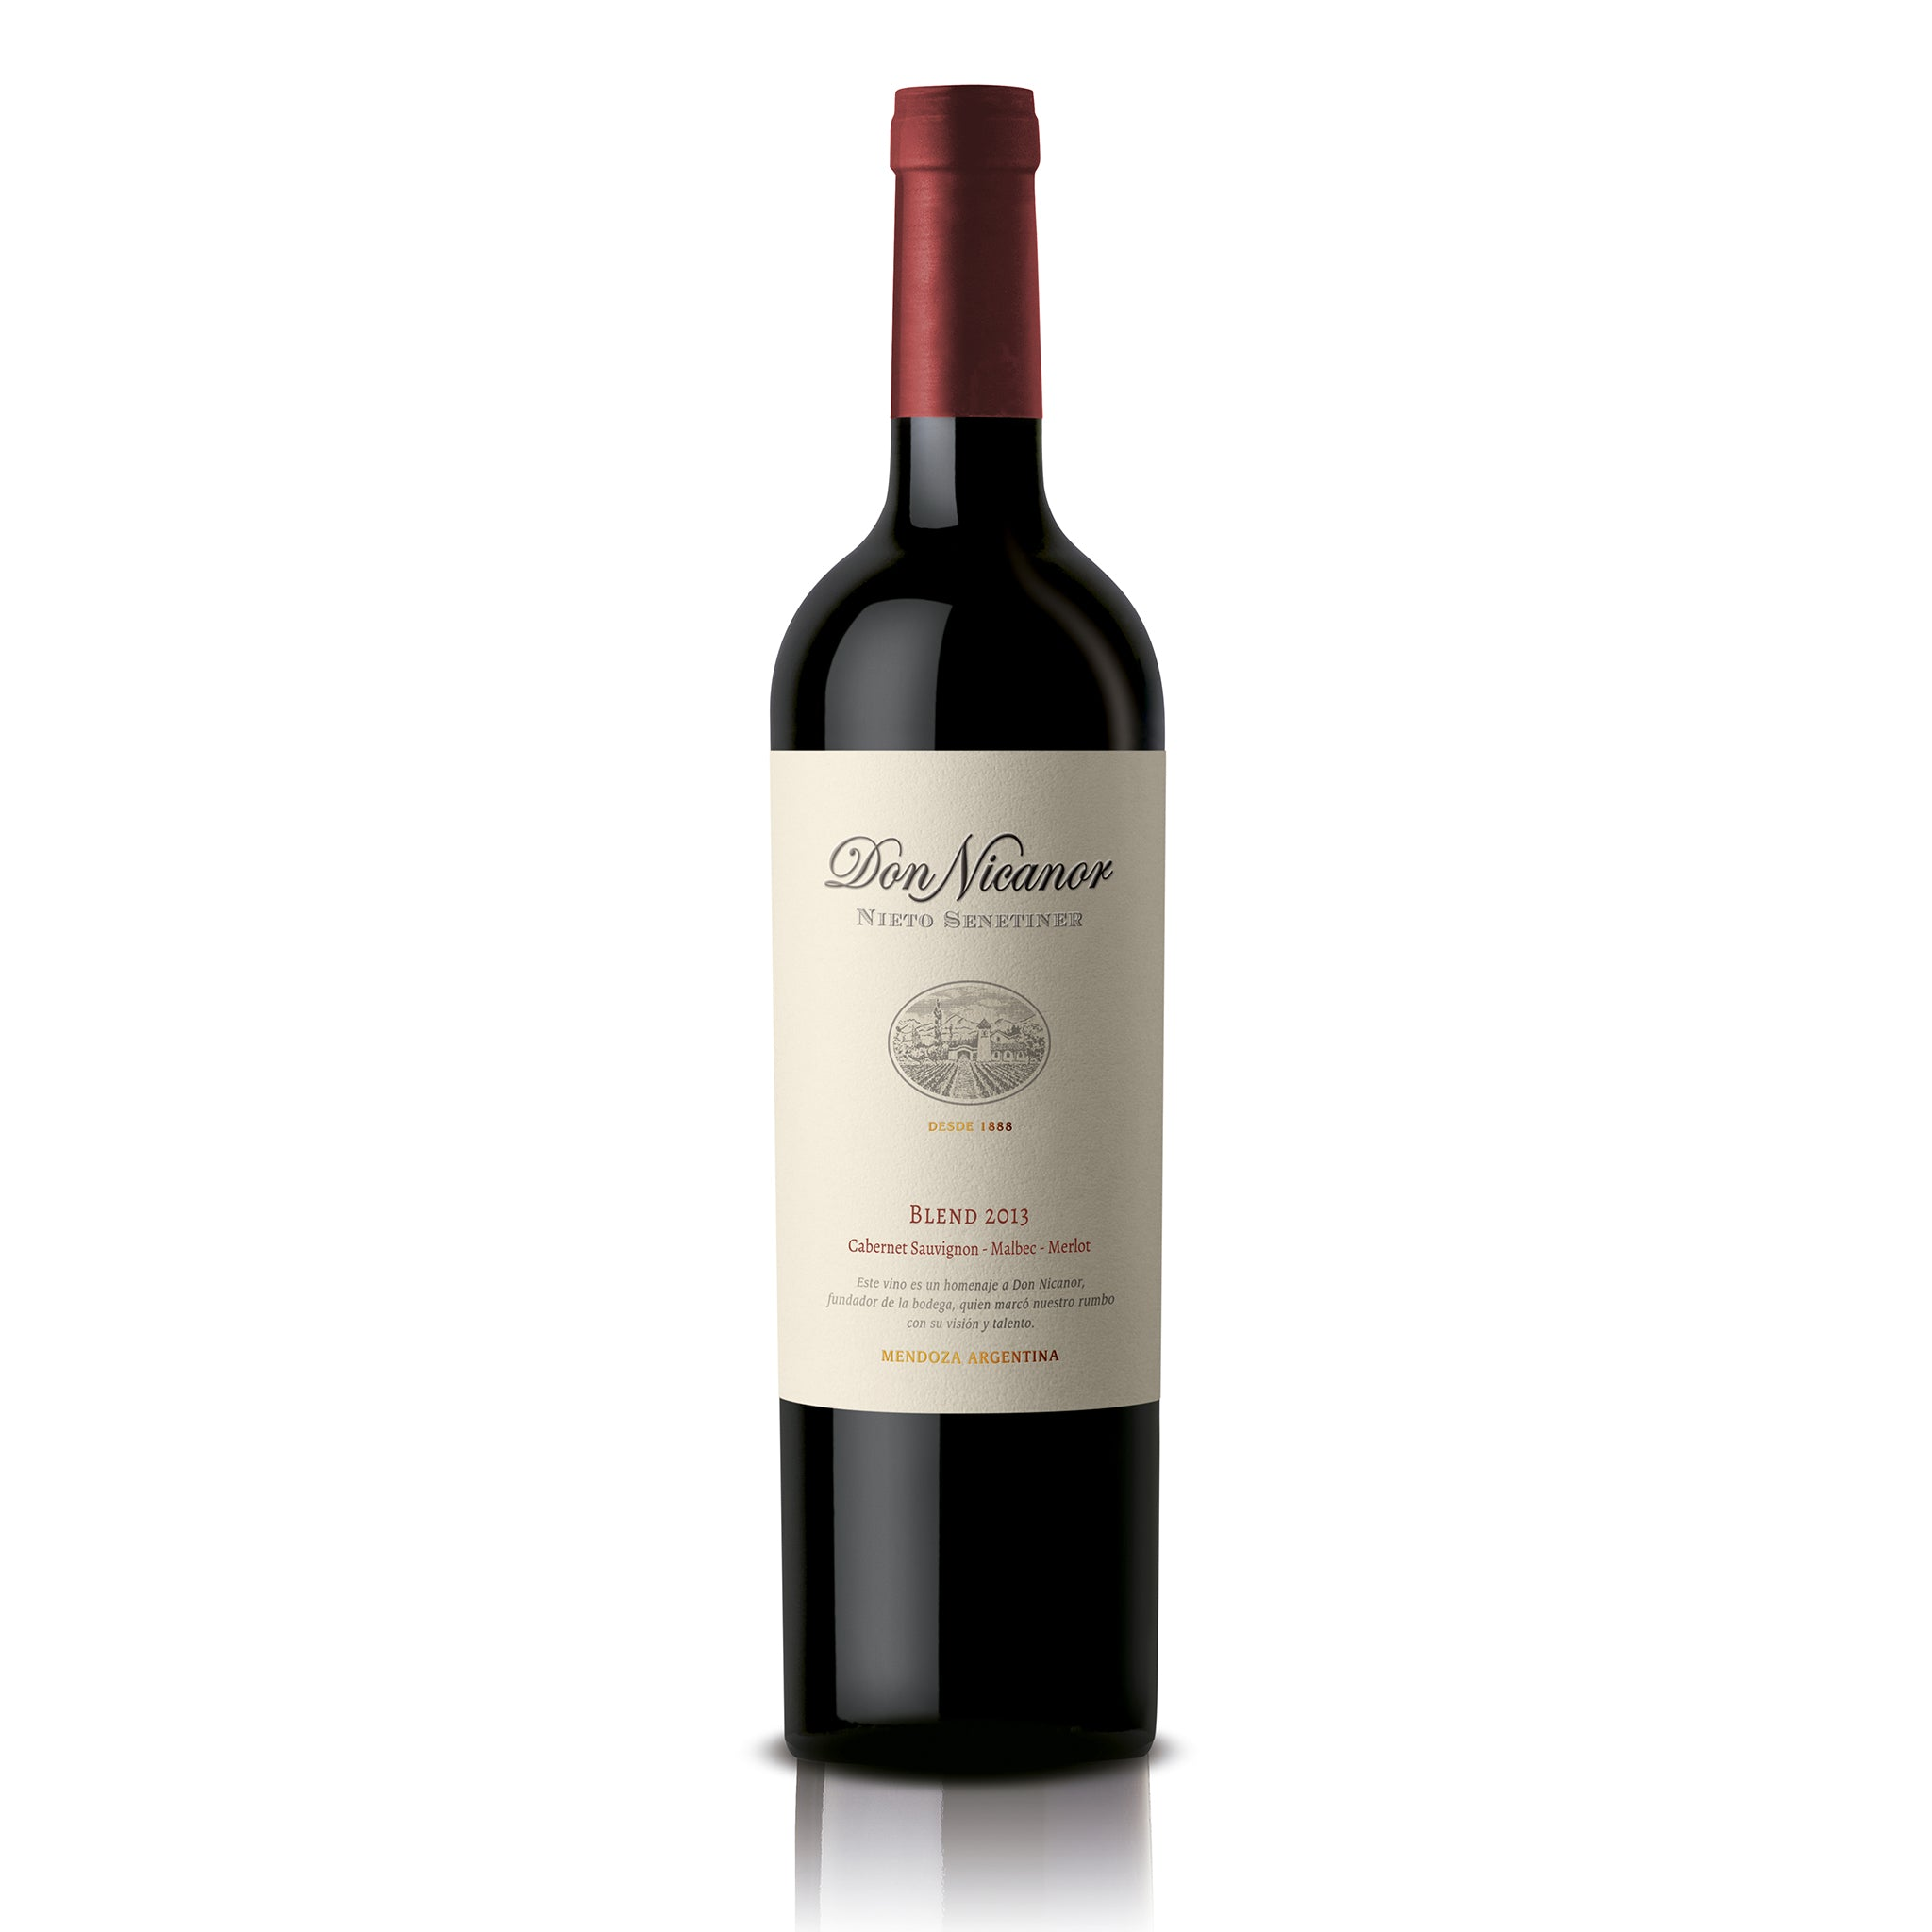 VINO NIETO SENETINER DON NICANOR BLEND 750ML